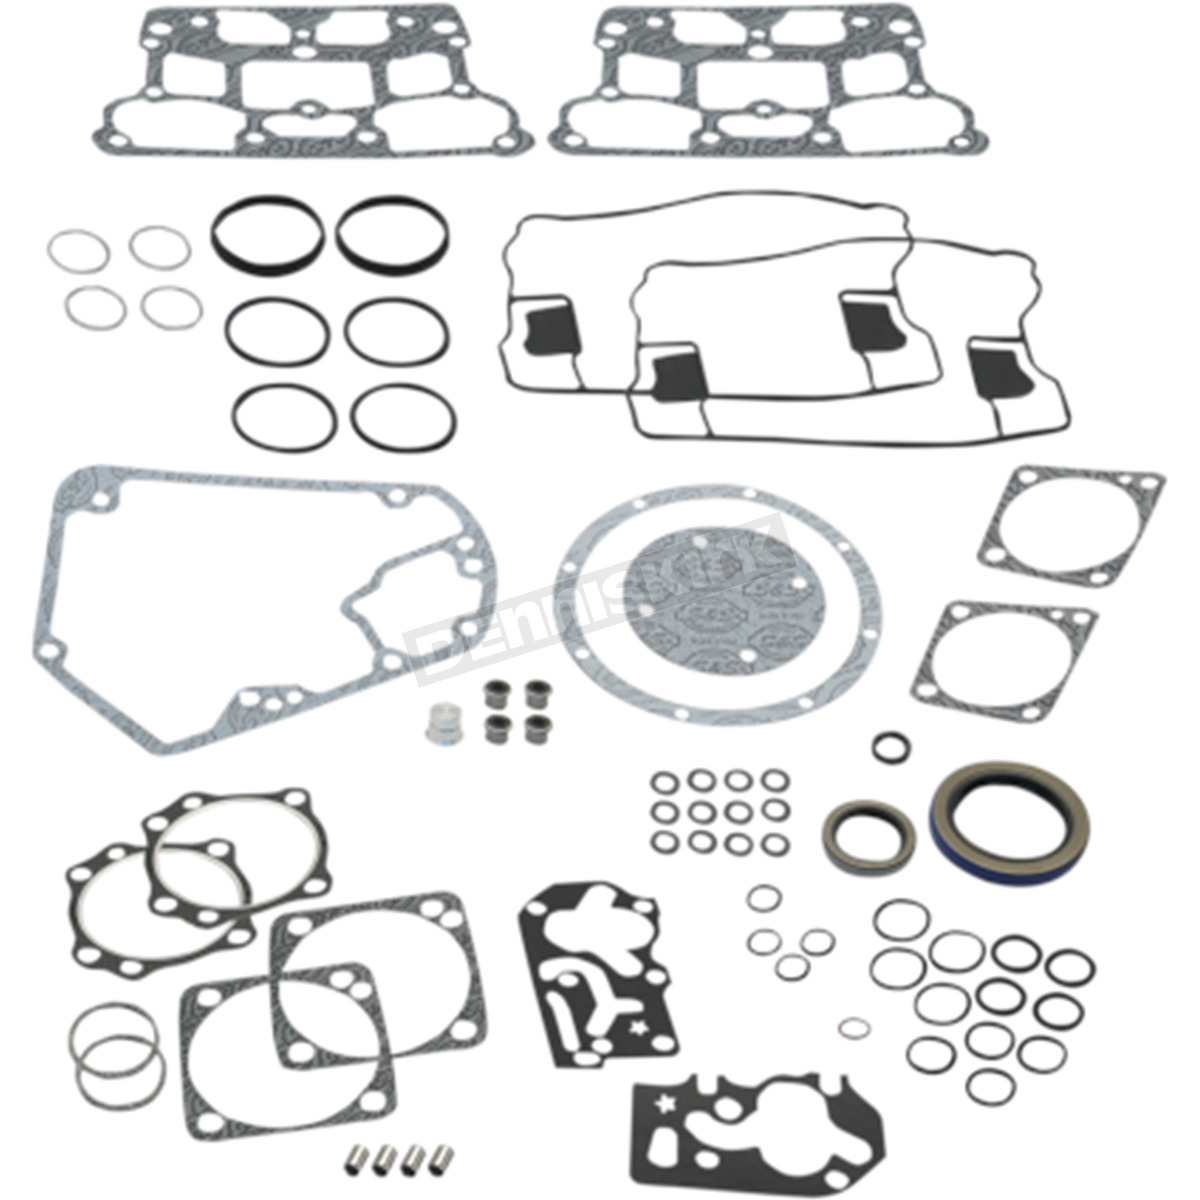 S Amp S Cycle Complete Gasket Kit For S Amp S V Series Motors With 4 1 8 Bore